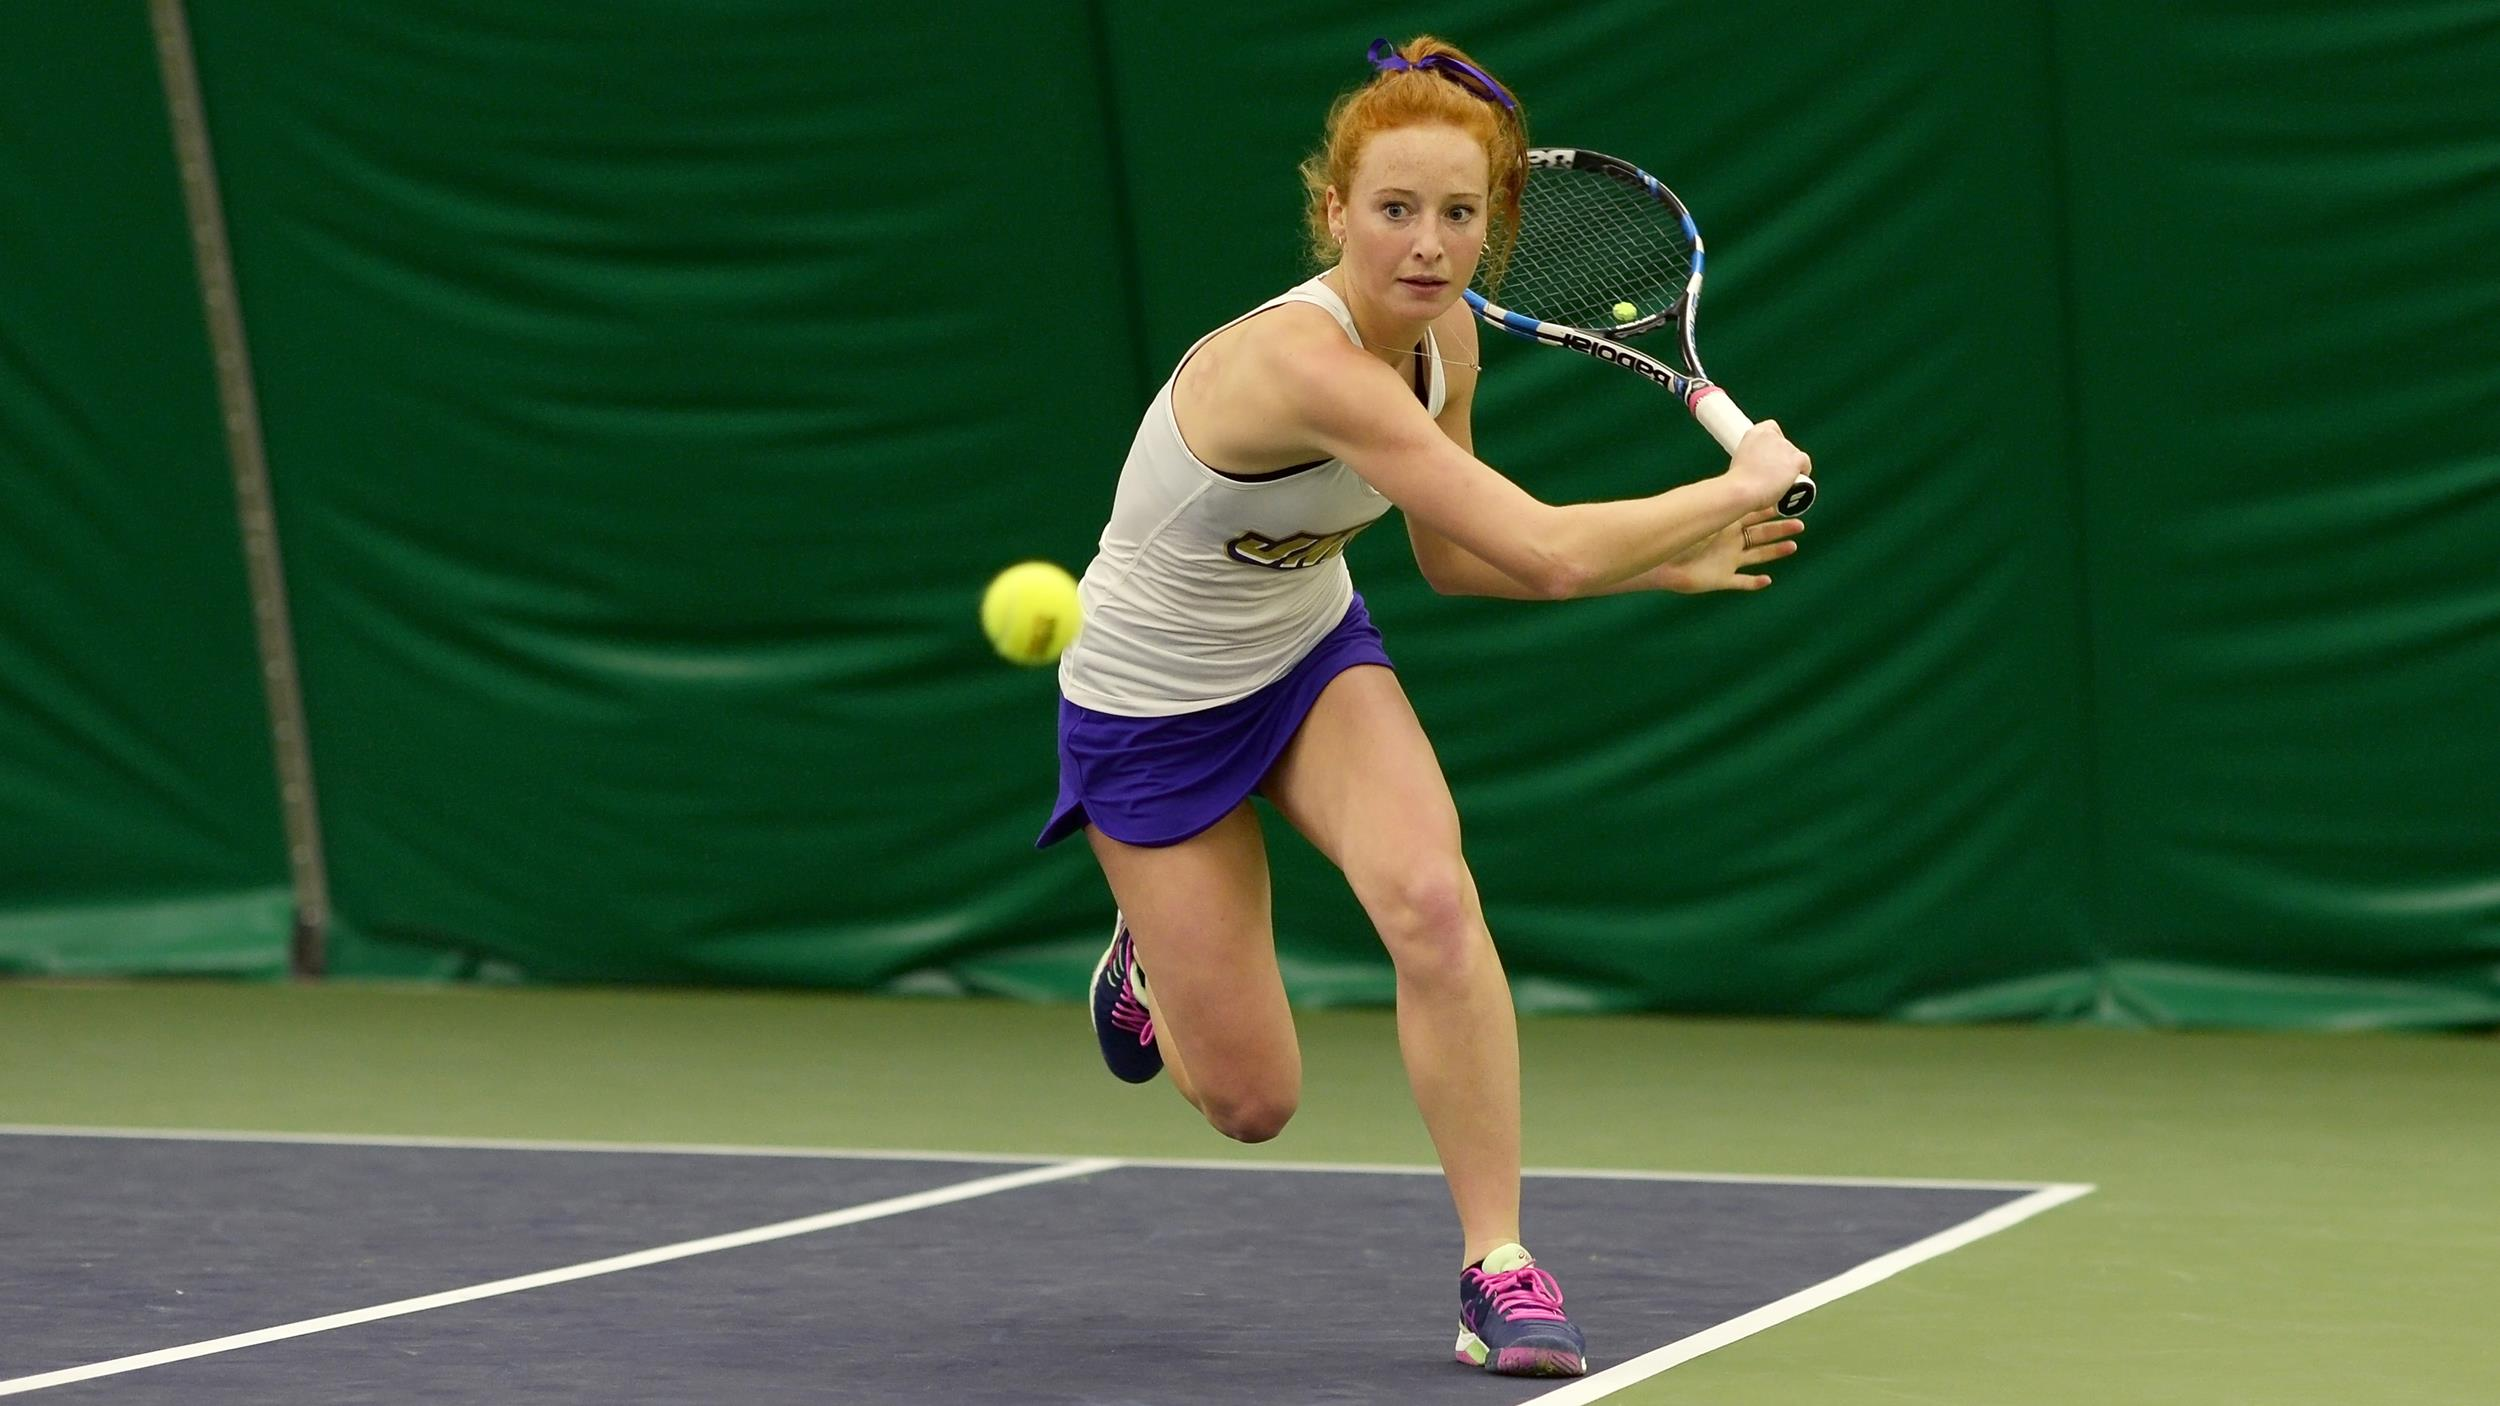 Women's Tennis: Dukes Sweep Morgan State 7-0, Stretch Opening Win Streak to Six)